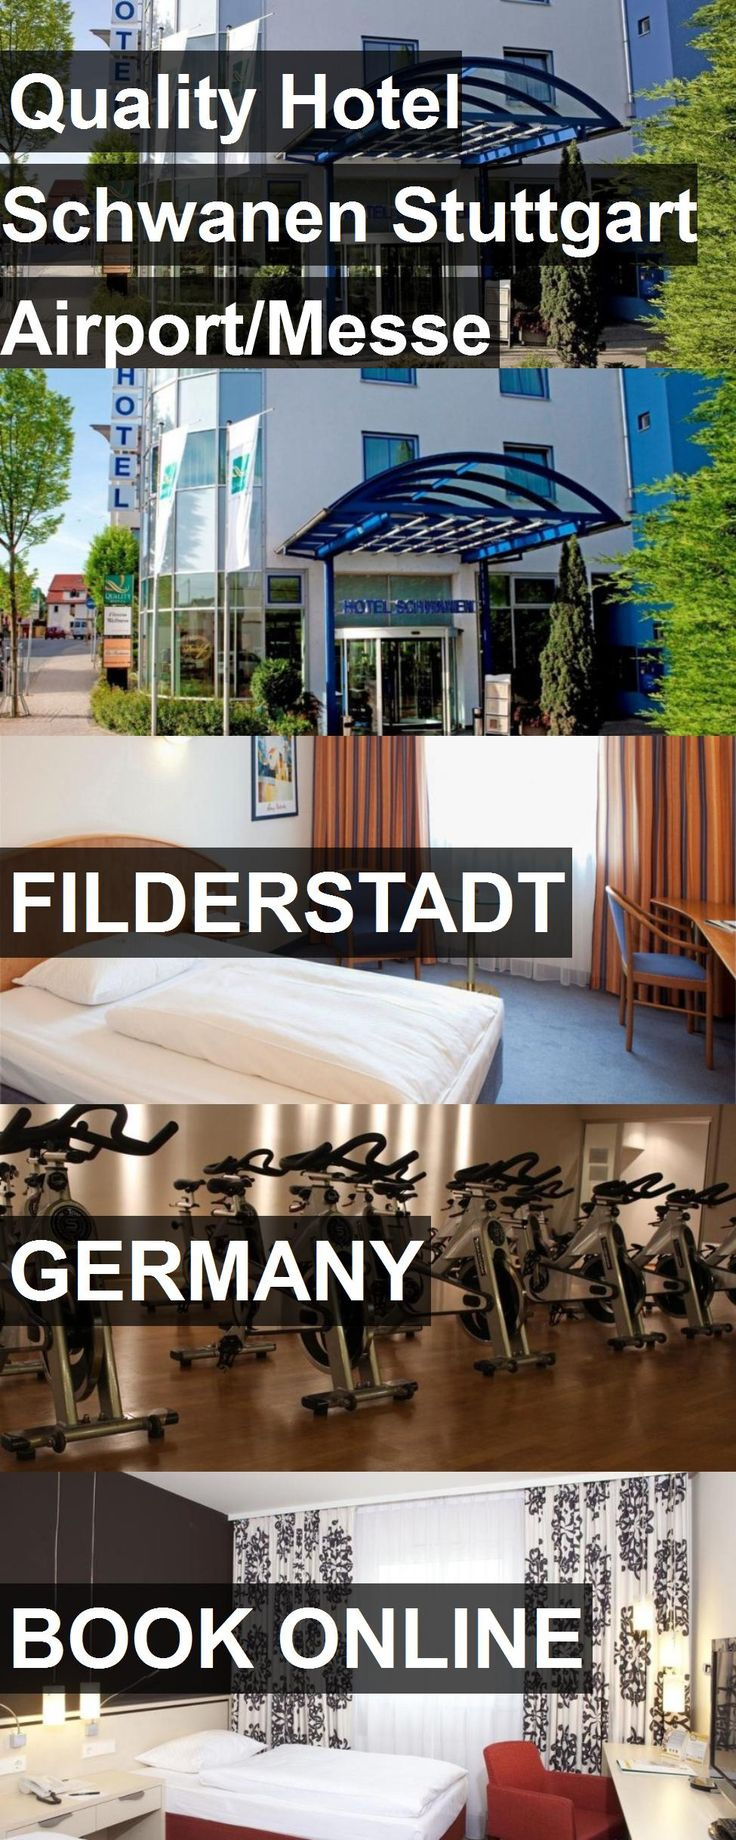 Quality Hotel Schwanen Stuttgart Airport/Messe in Filderstadt, Germany. For more information, photos, reviews and best prices please follow the link. #Germany #Filderstadt #travel #vacation #hotel